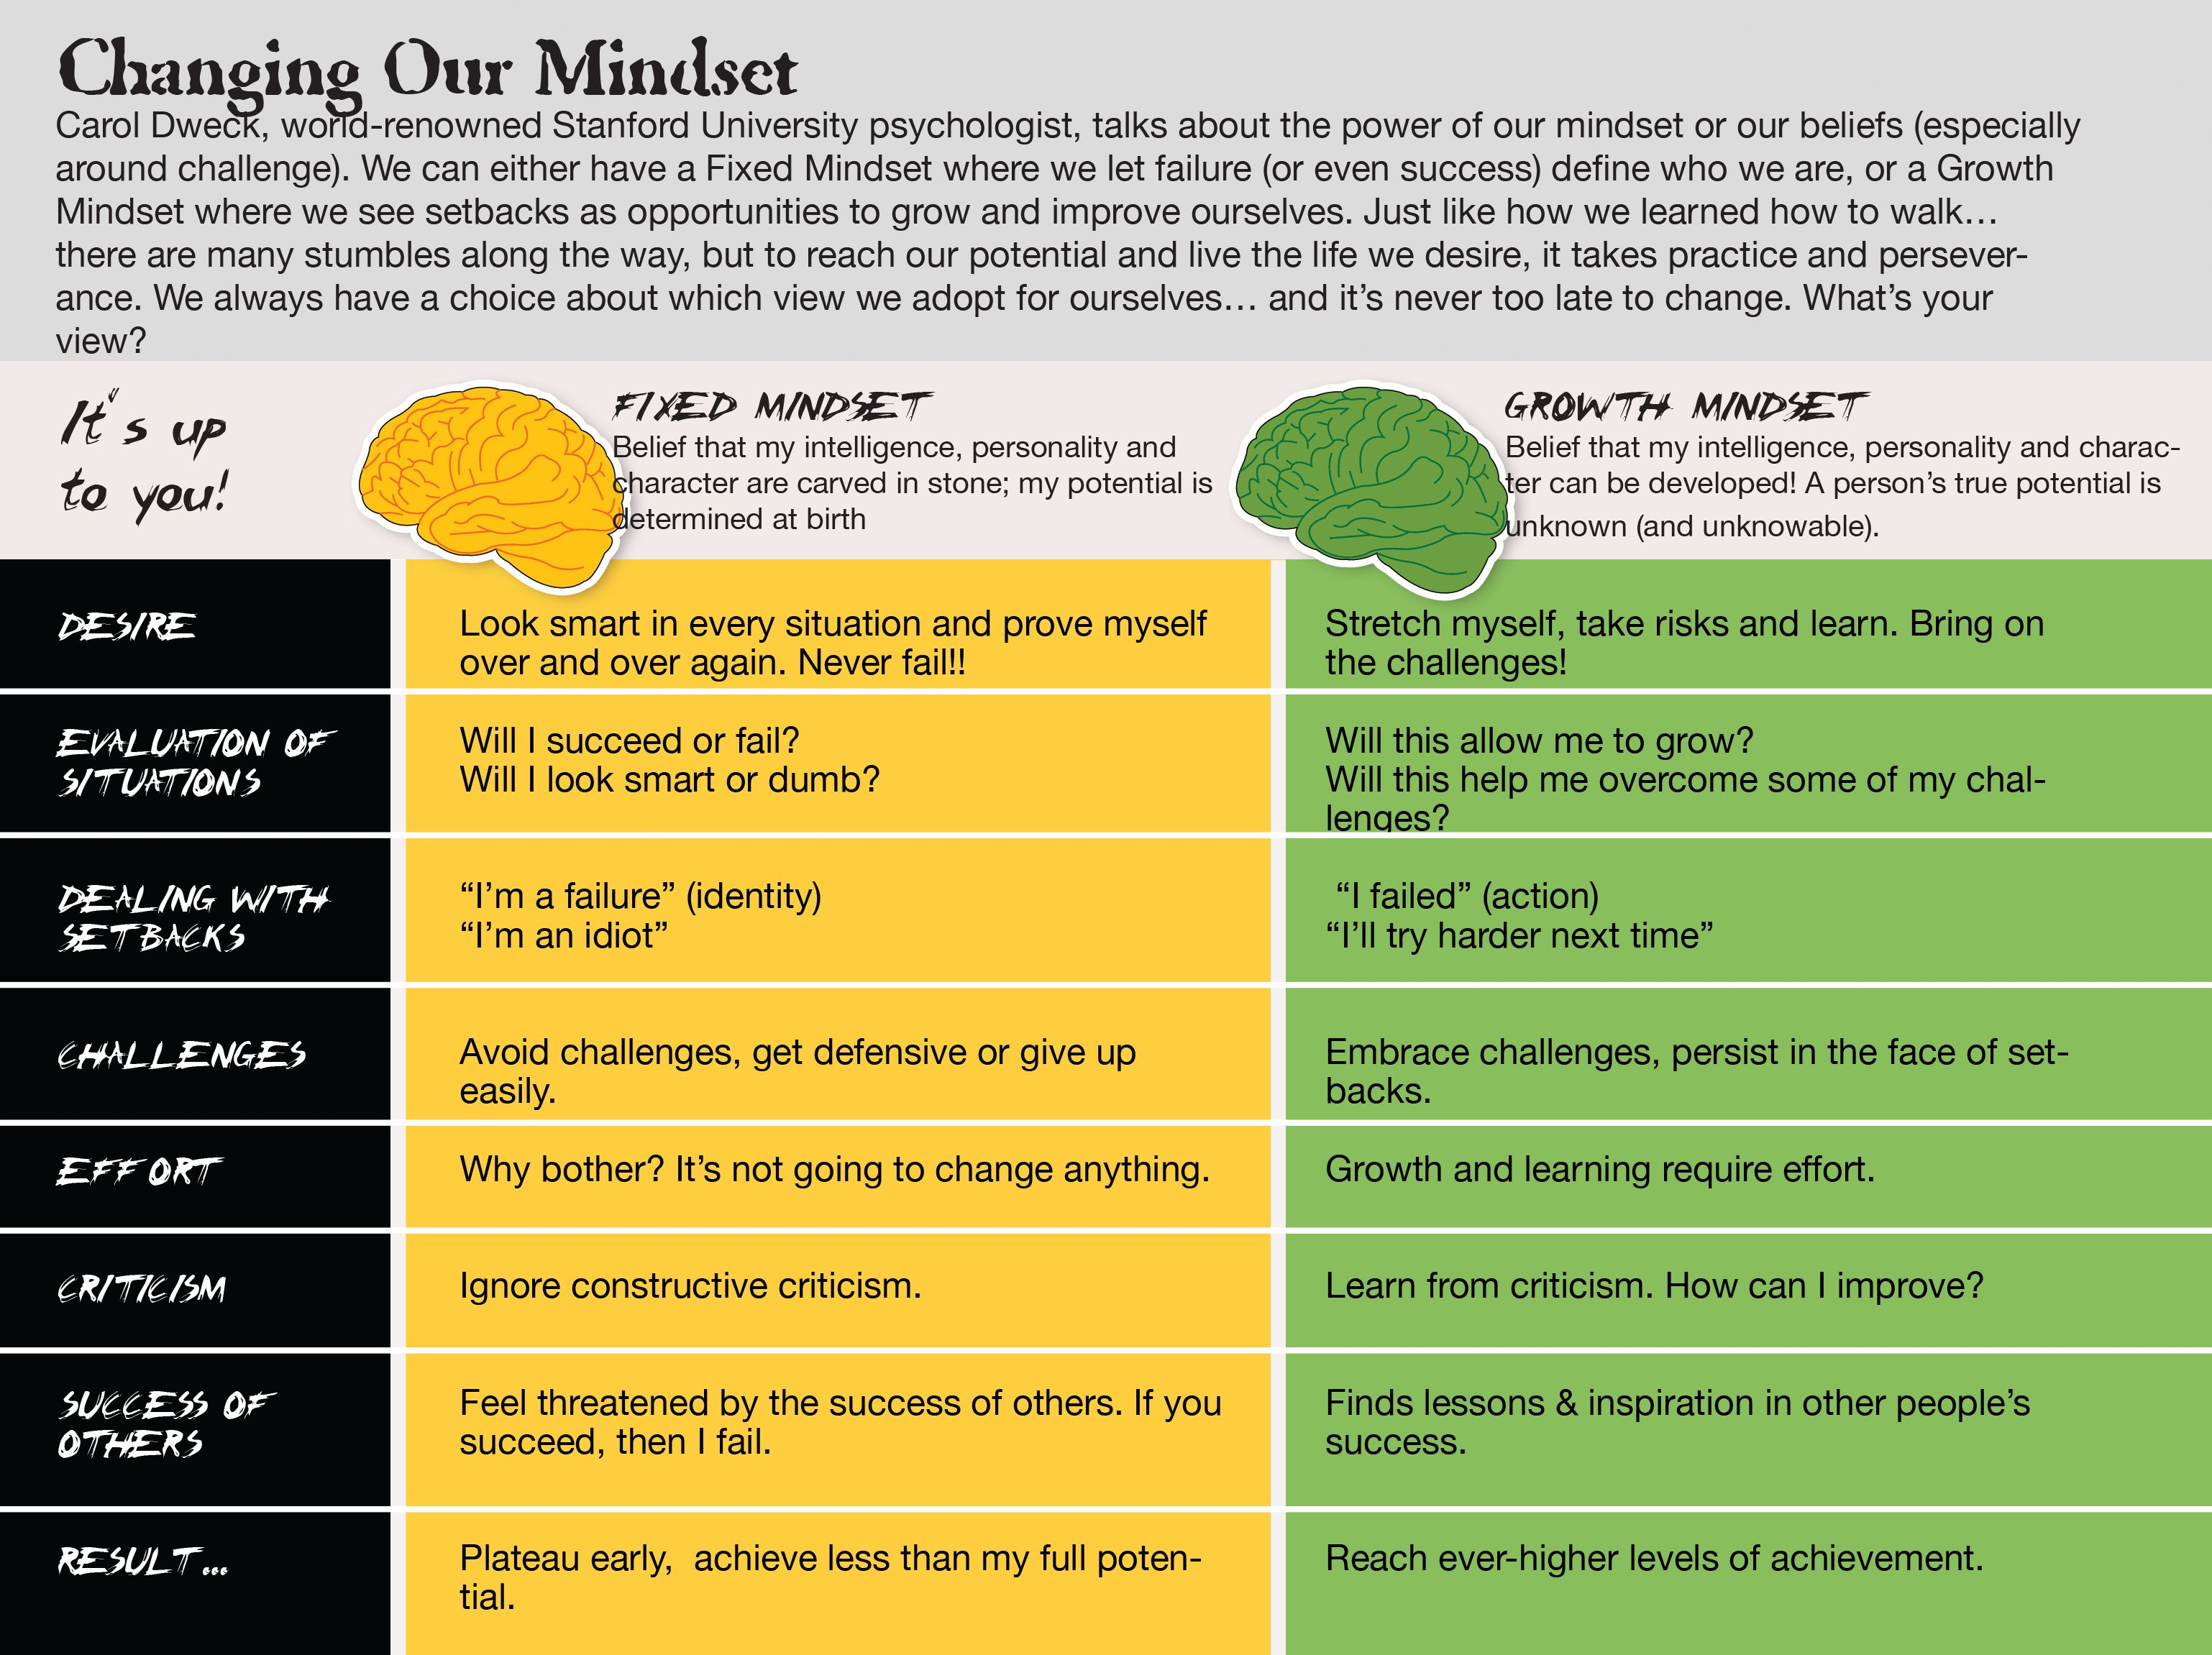 35 best images about Growth Mindset on Pinterest | Teaching ...